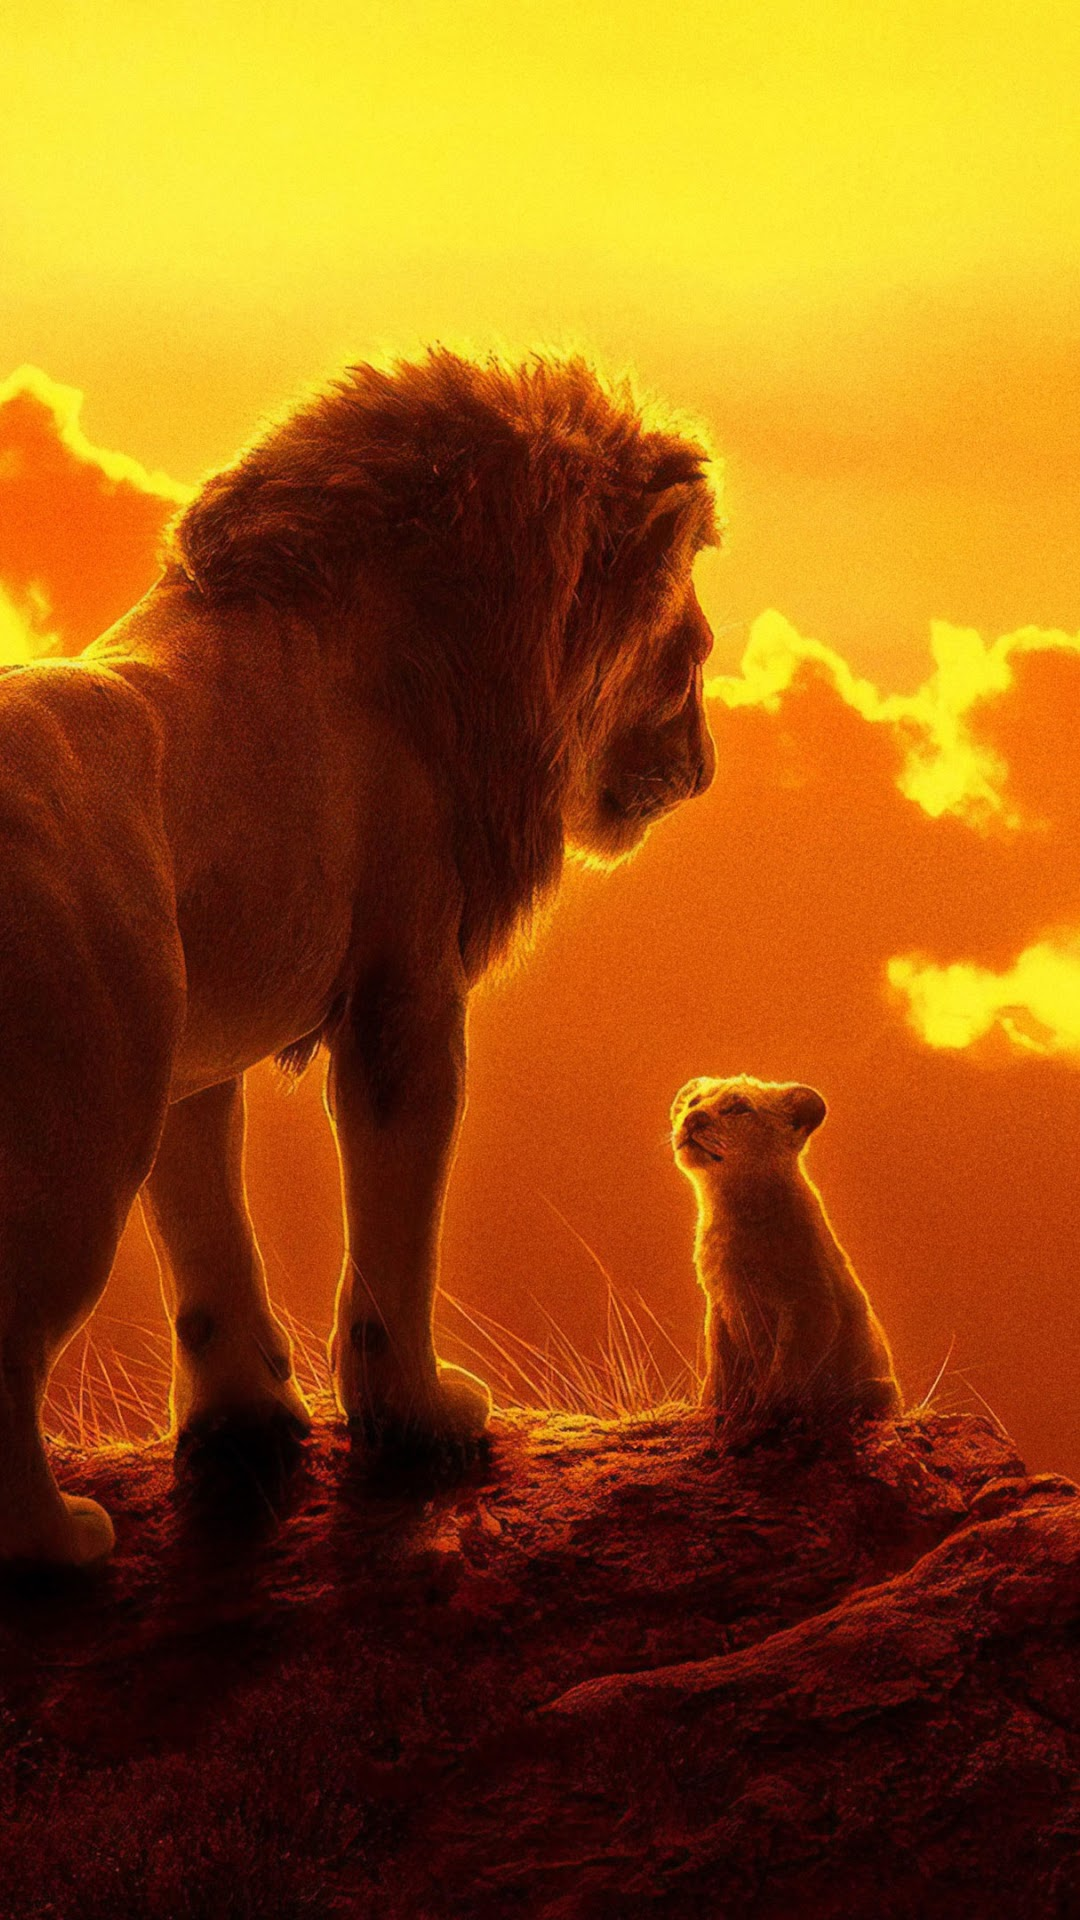 The Lion King 2019 Mufasa Simba 4k Wallpaper 20